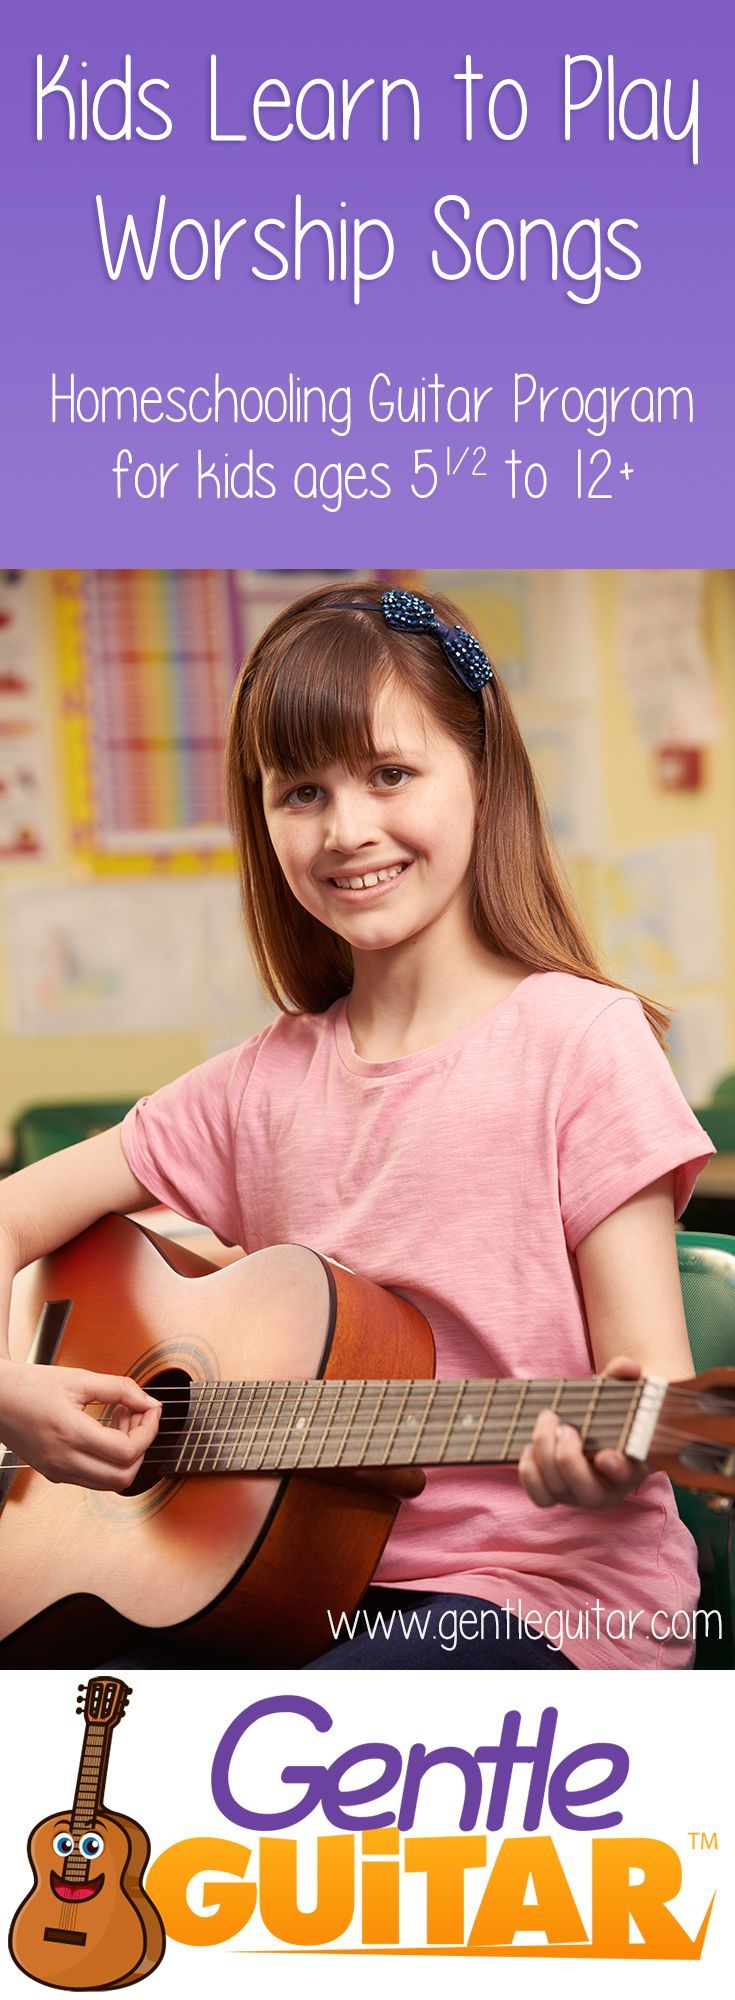 19 Best Homeschool Electives Images On Pinterest Tips For Buying An Electric Guitar Guitars 101 Your Bible Do You Have Young Kids Who Like To Sing And Dance Around The House